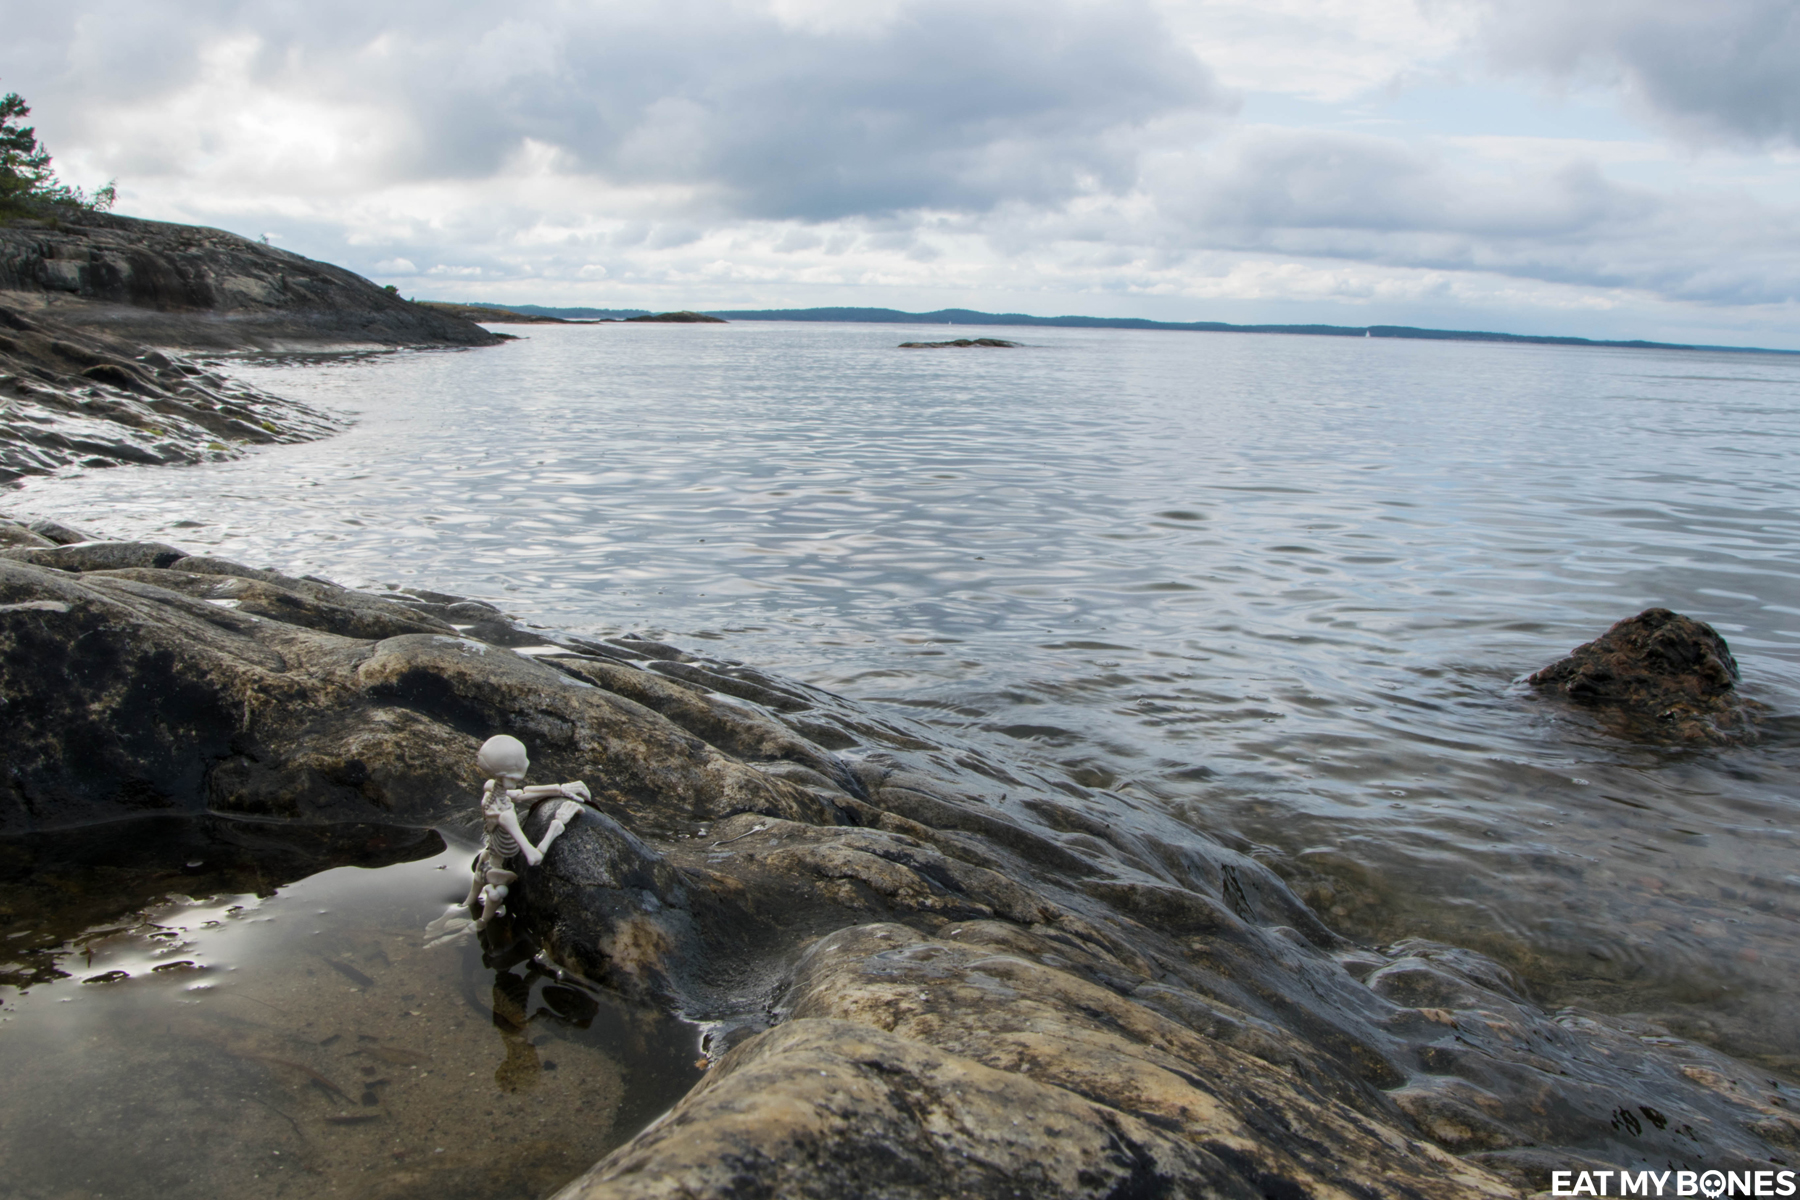 Sweden trip : Seaside Walk - Pose Skeleton - Toy photography - Miniature - Eat my Bones